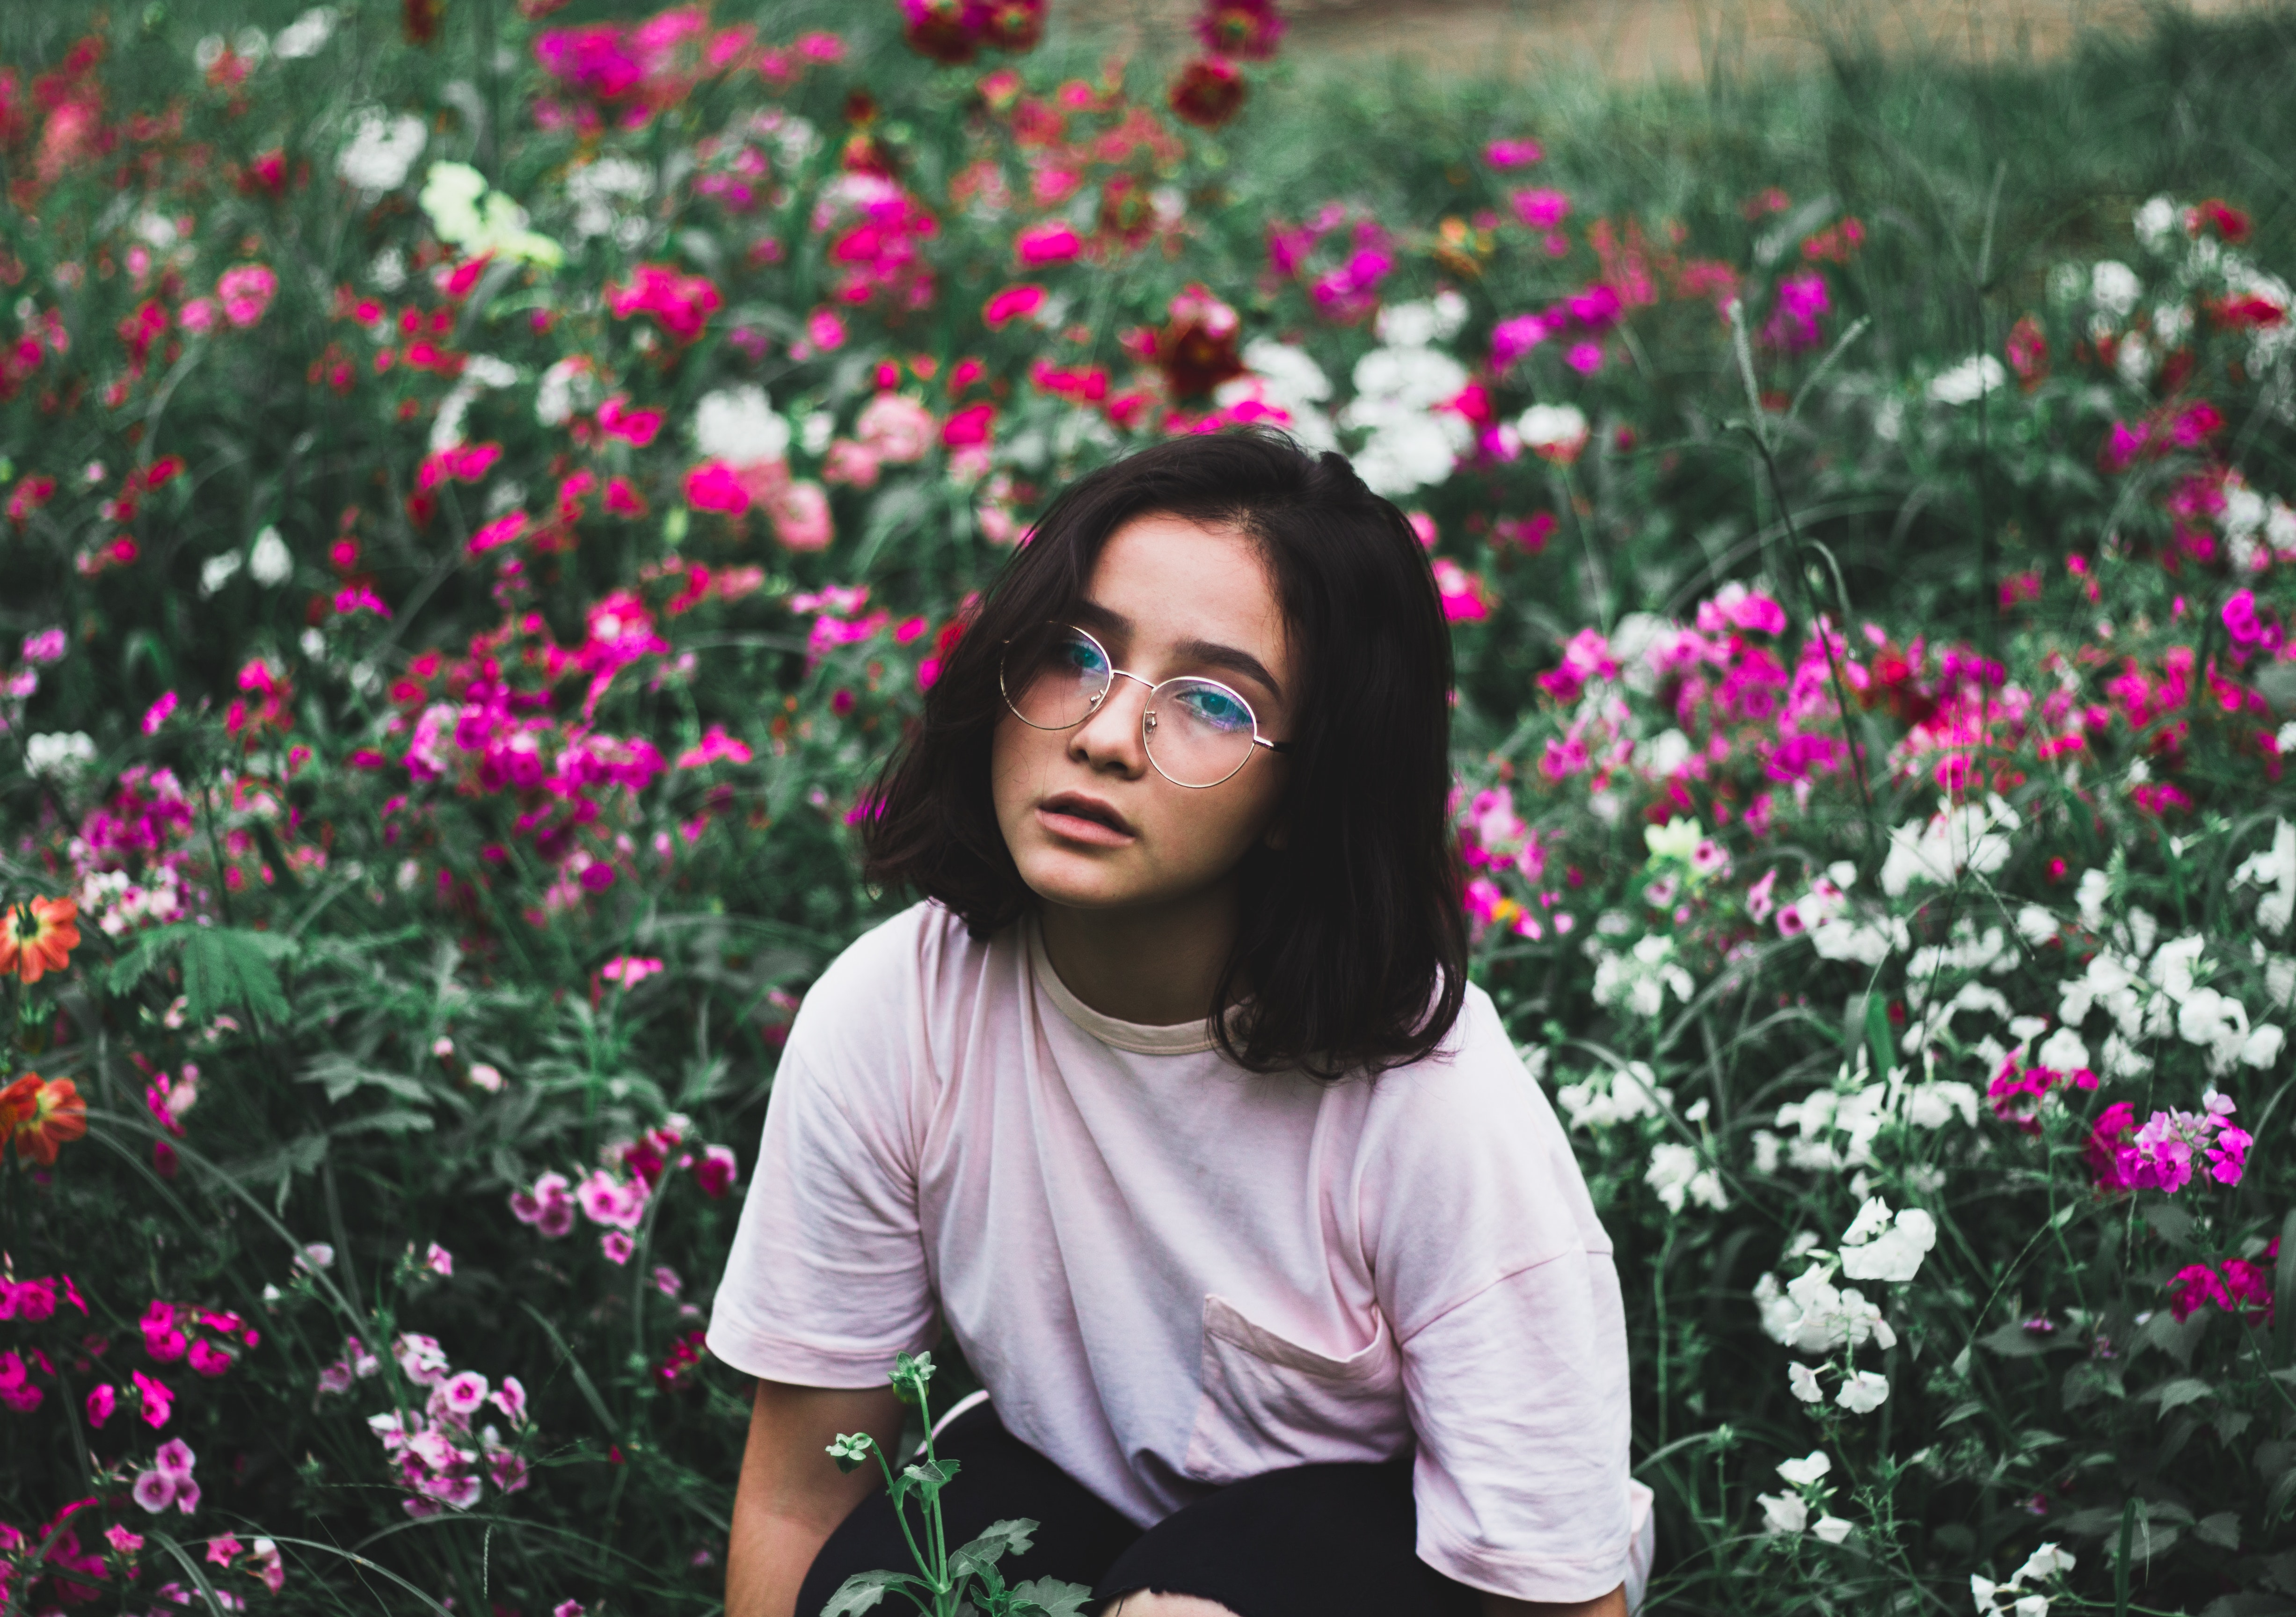 Girl in White T-shirt Surrounded by Flowers, Beautiful, Grass, Park, Outside, HQ Photo